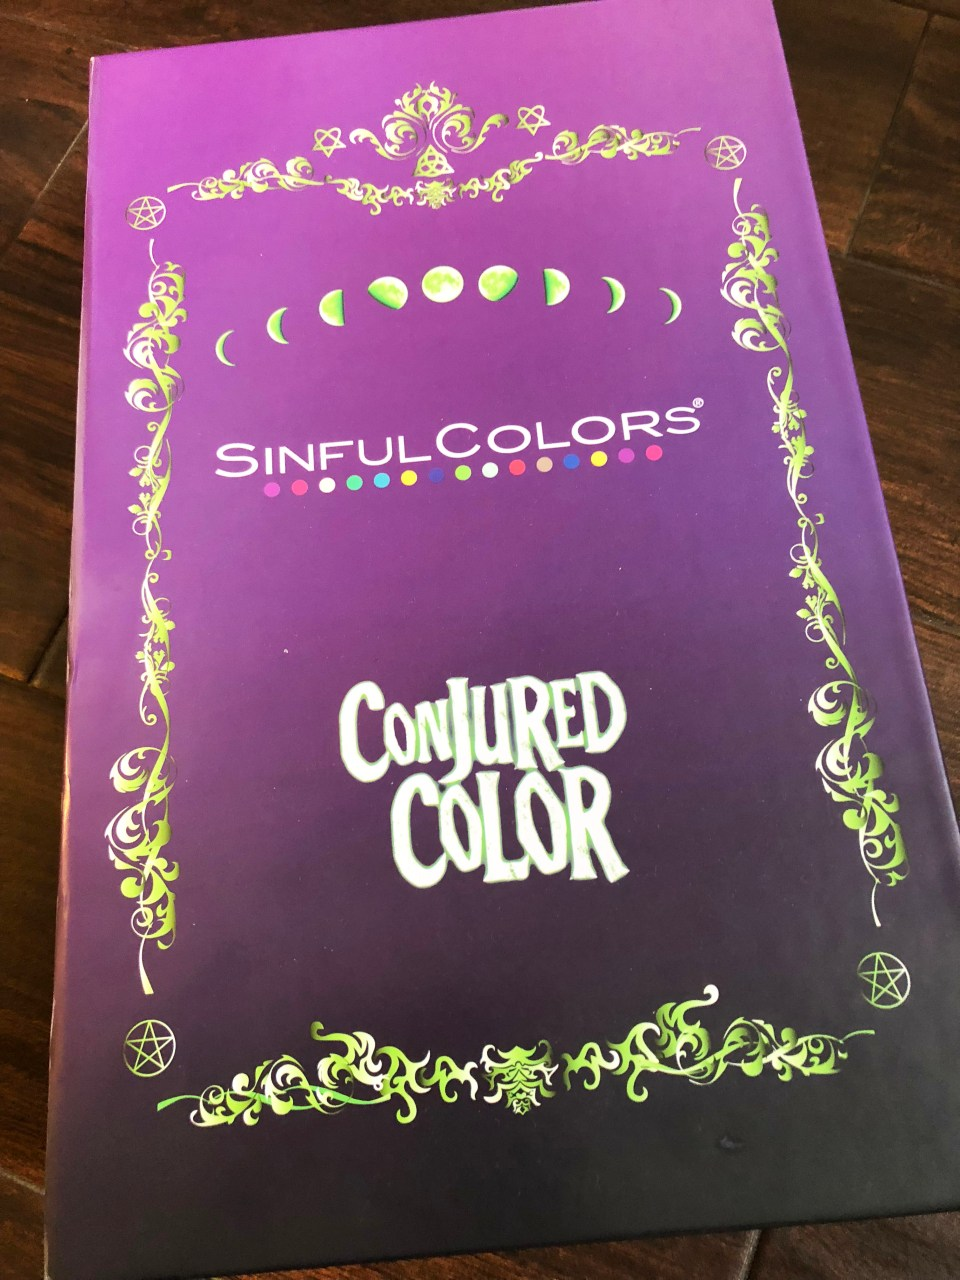 Sinful Colors - Conjured Color